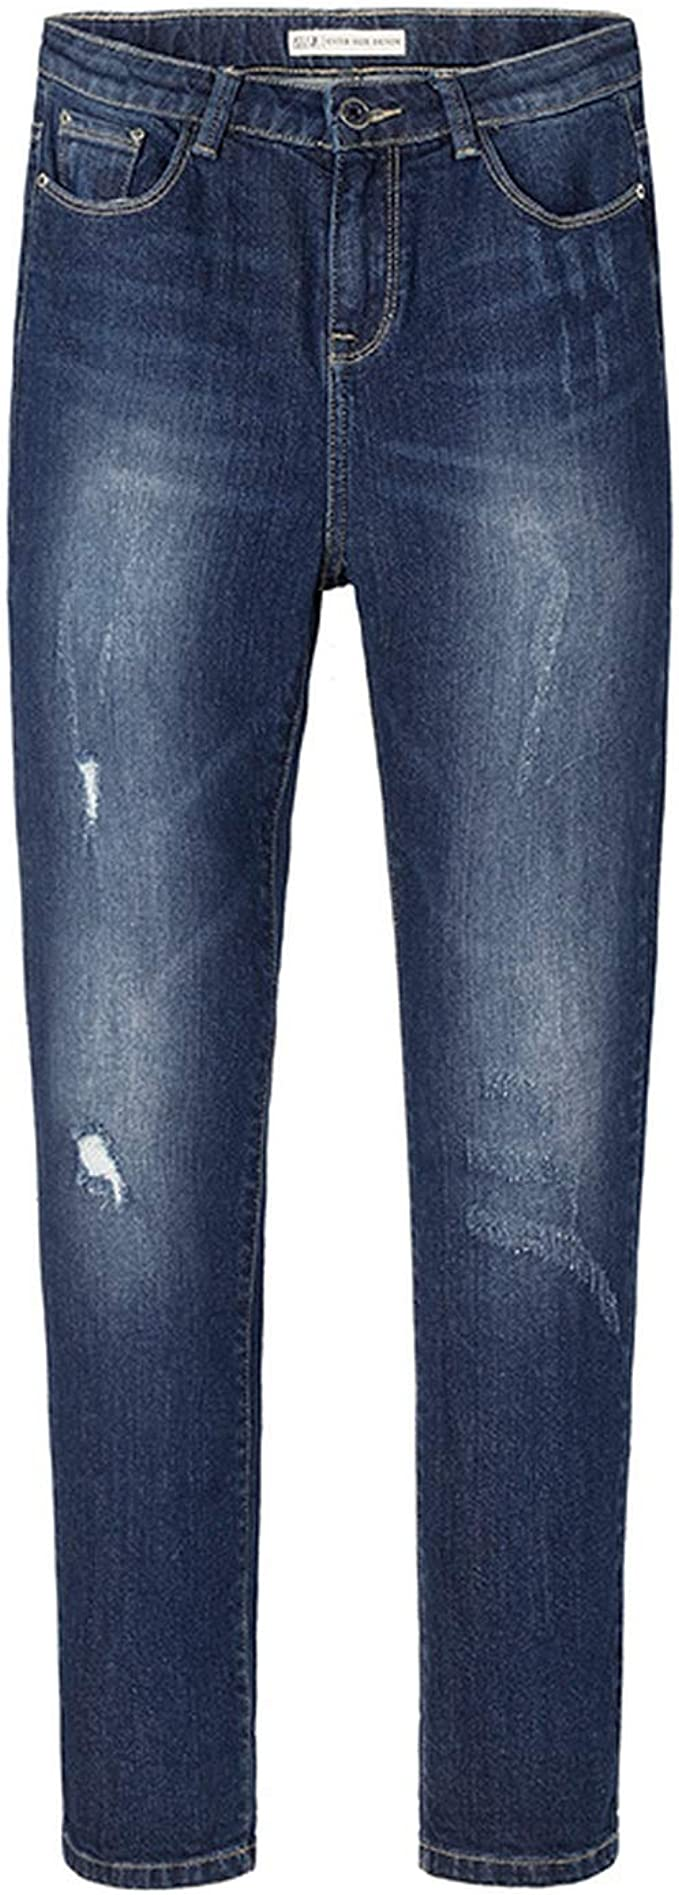 TiGcTRly Women Basic Vintage Distressed Regular Ripped Stretch Harem Jeans